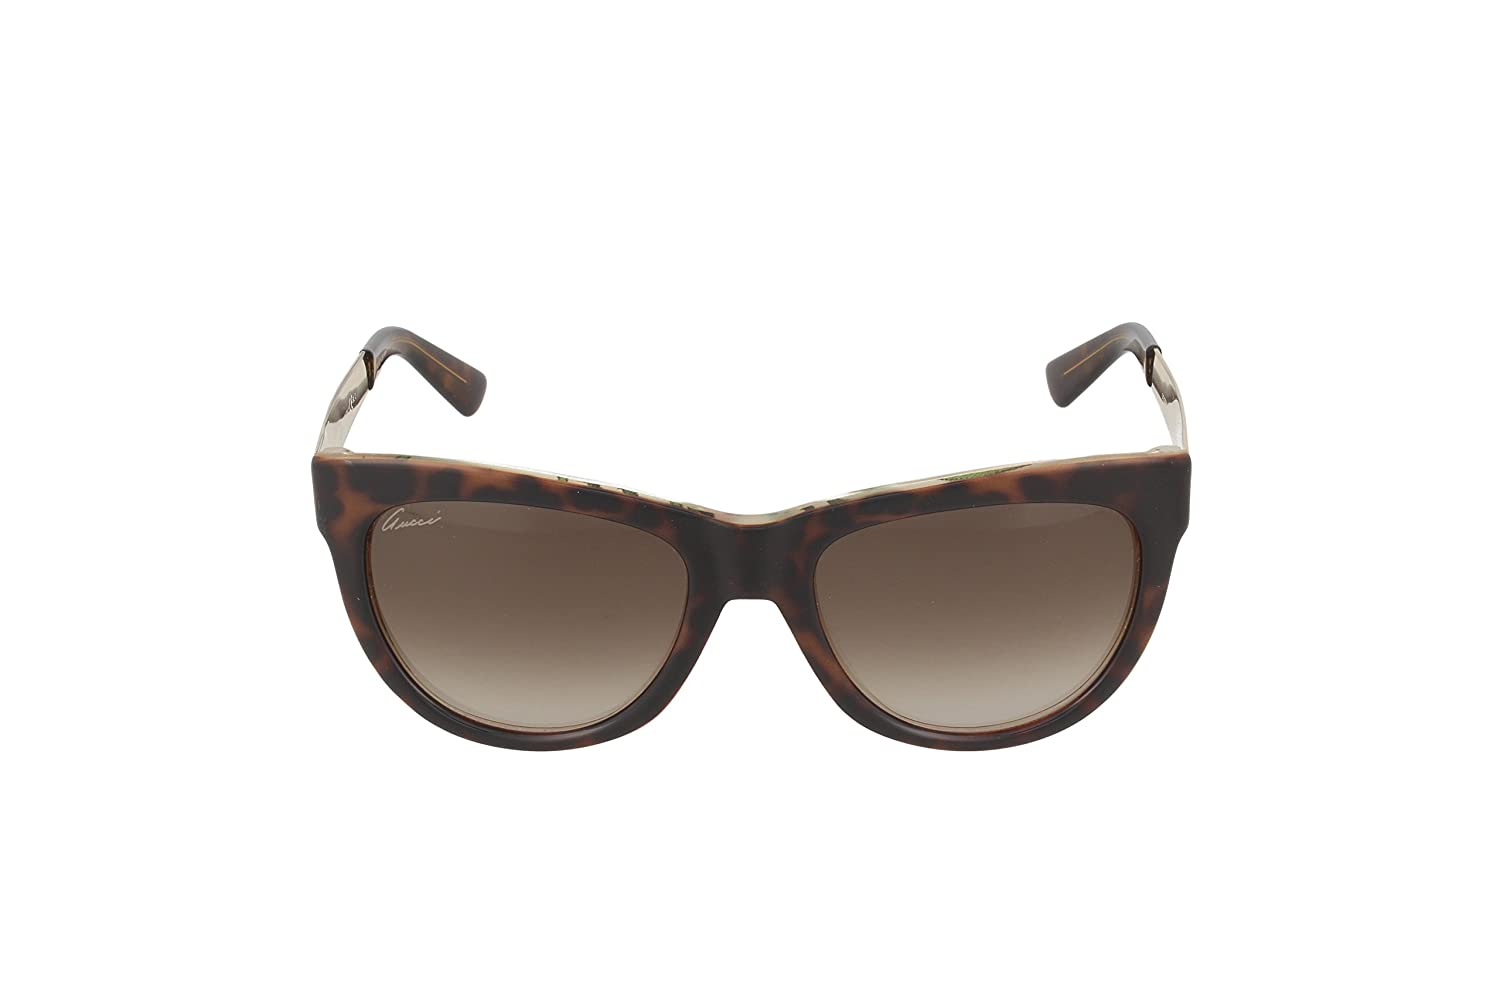 f0370ad3ab Gucci Gold Plated Mirror Aviator Sunglasses « One More Soul